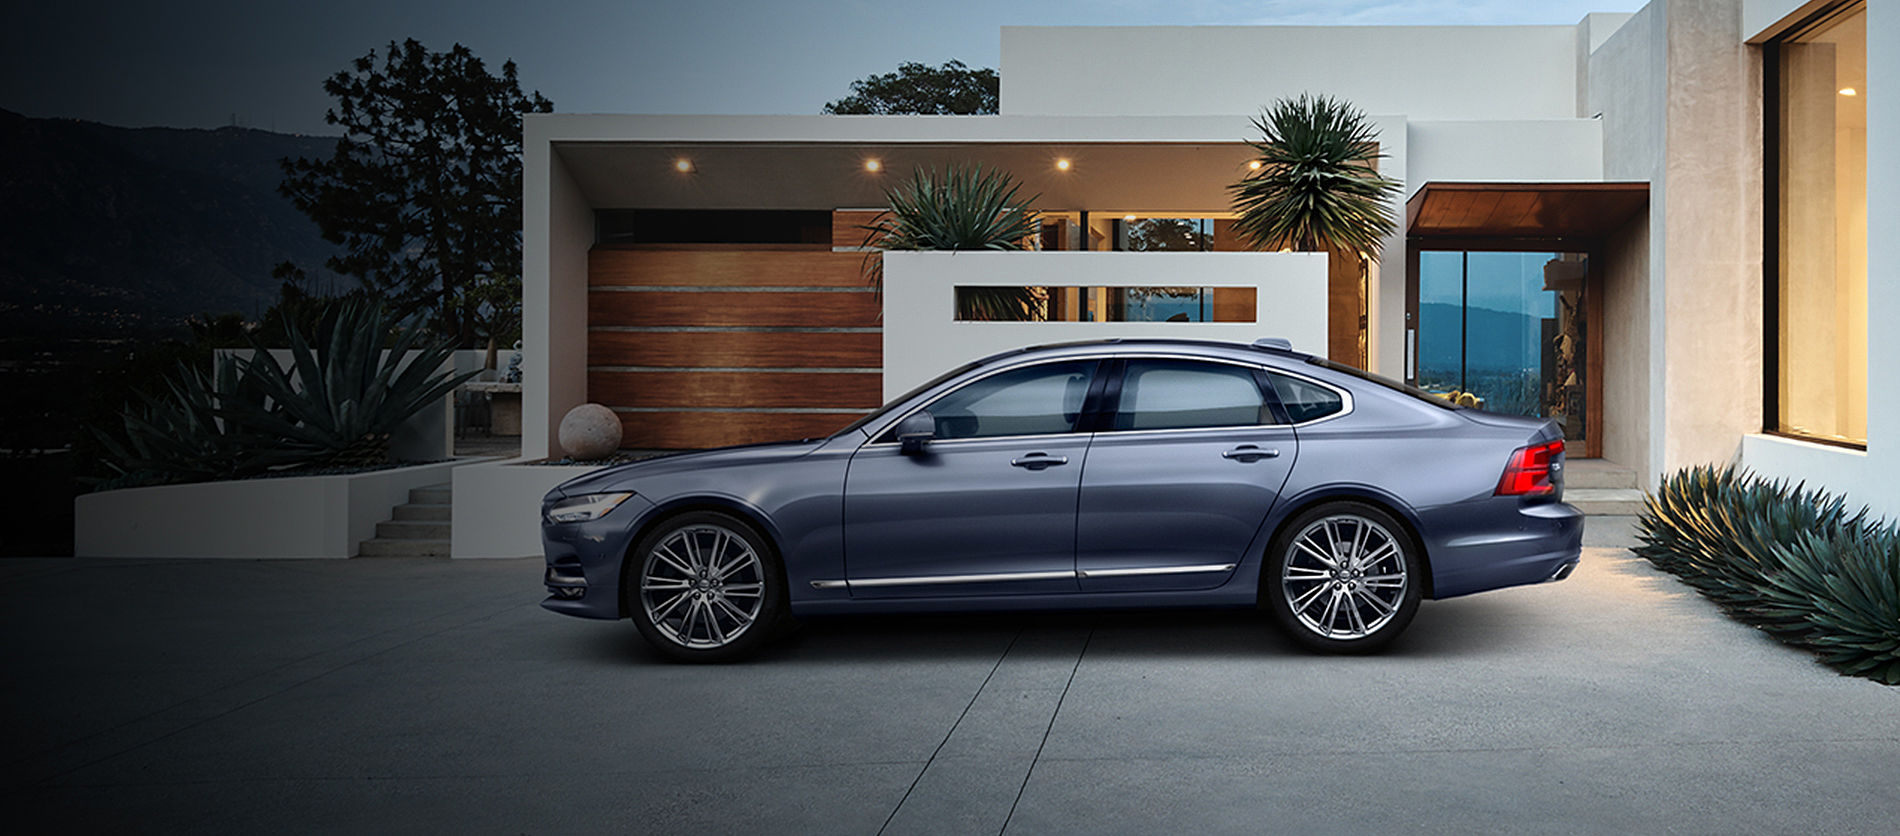 S90 with two complementary Services on PCP 10.9% APR Representative